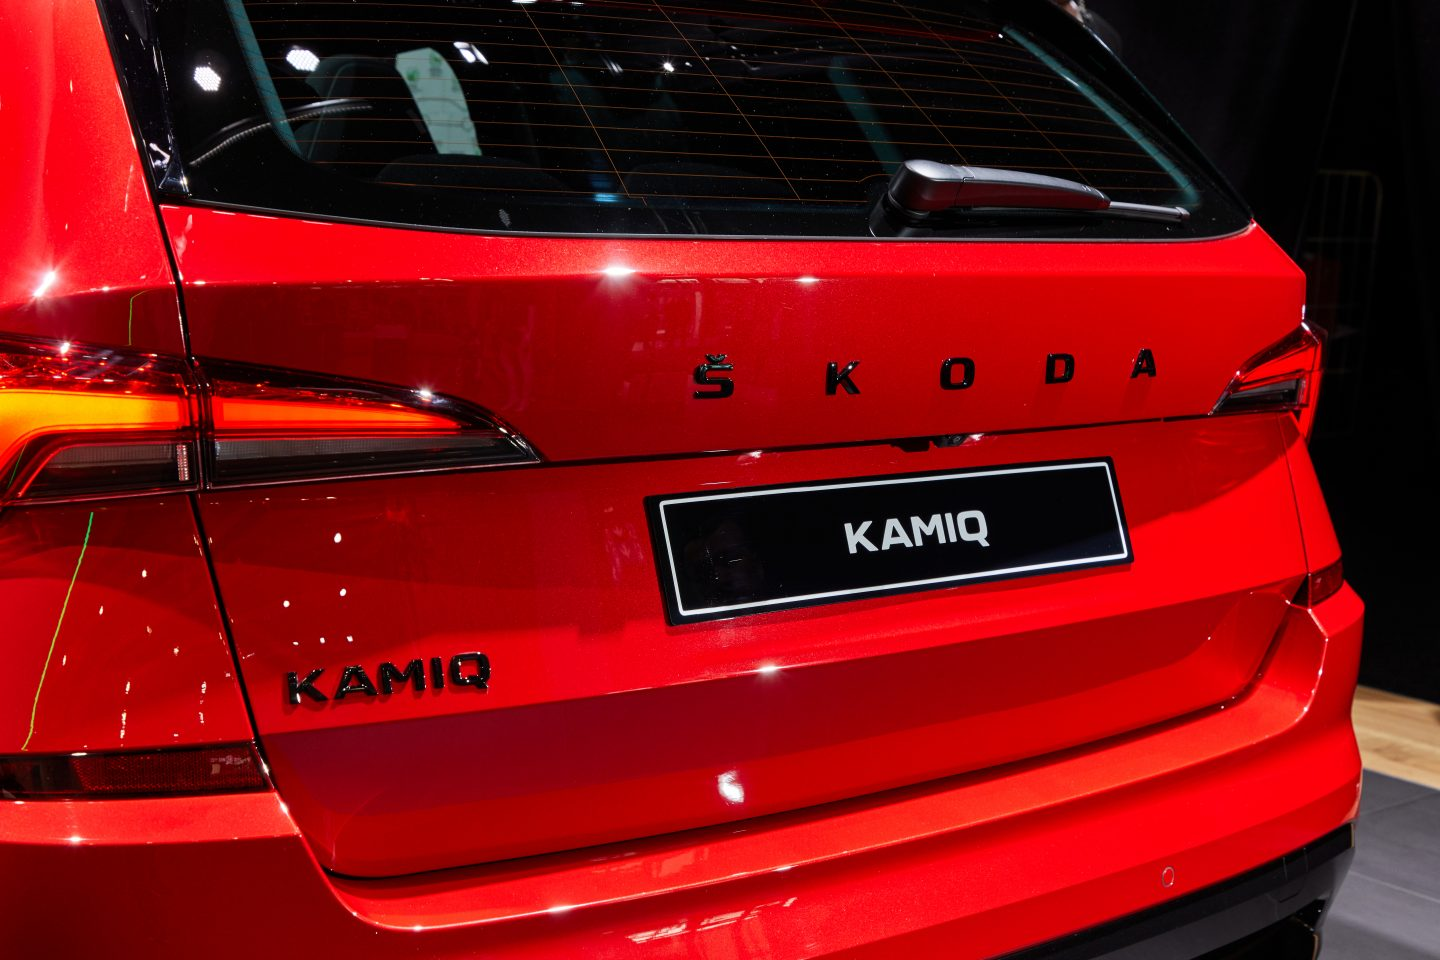 skoda-kamiq-rear-light-dynamic-frankfurt